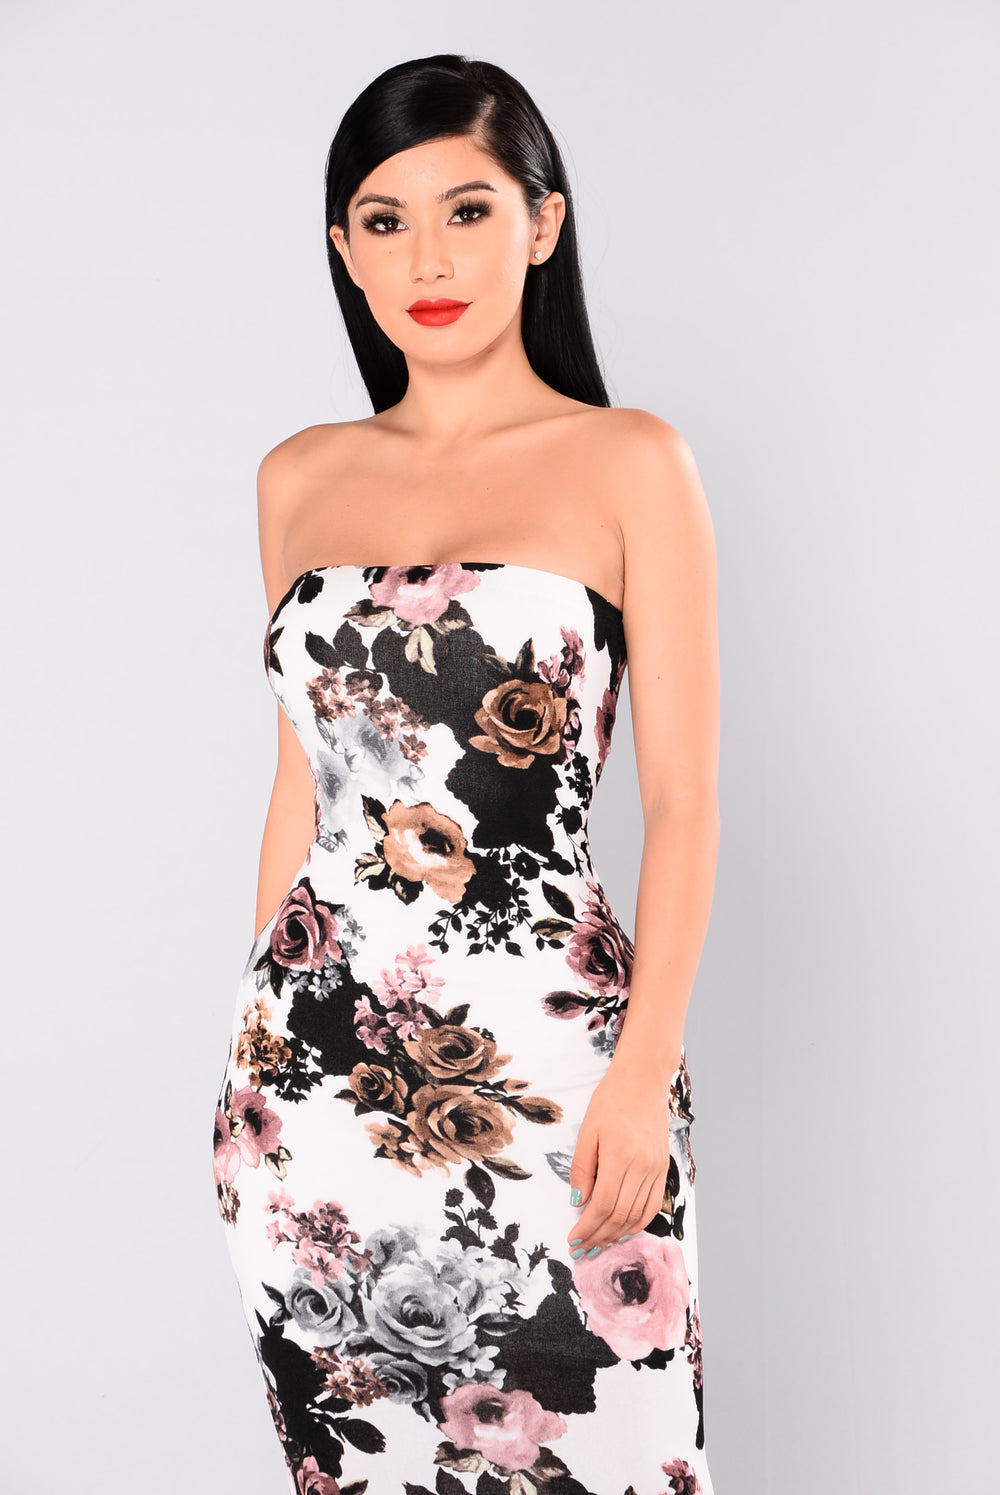 Grove Park Floral Dress - Ivory Multi